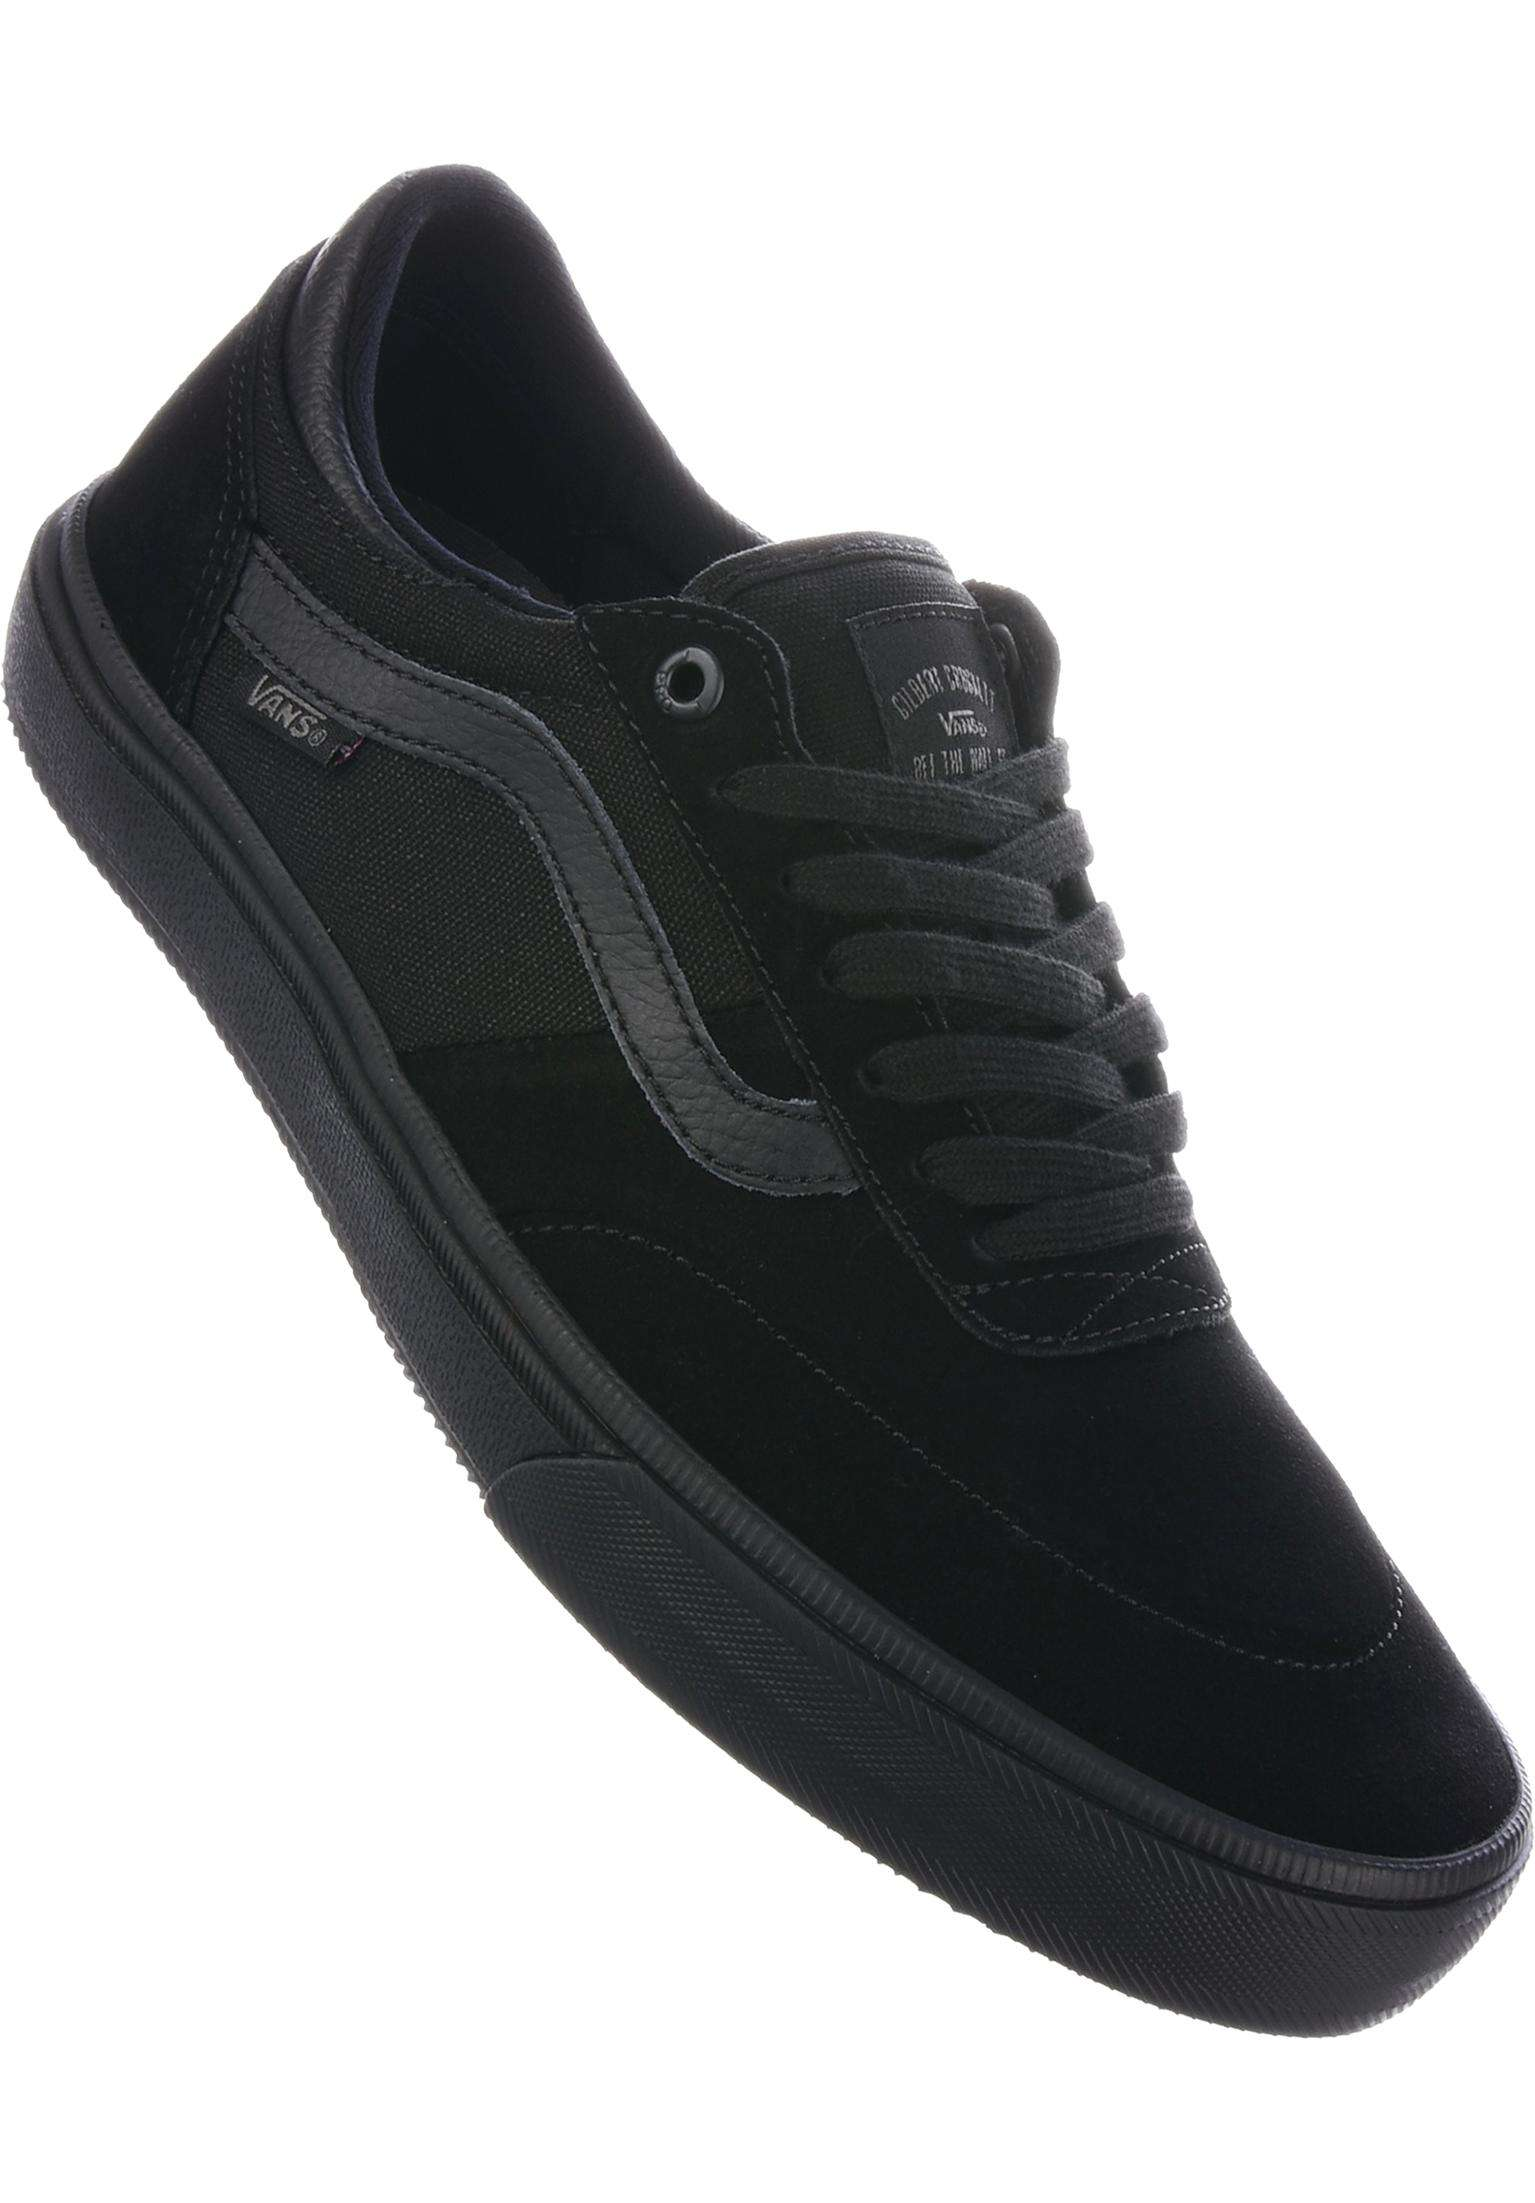 Gilbert Crockett Pro 2 Vans All Shoes in blackout for Men  0c596c0b4